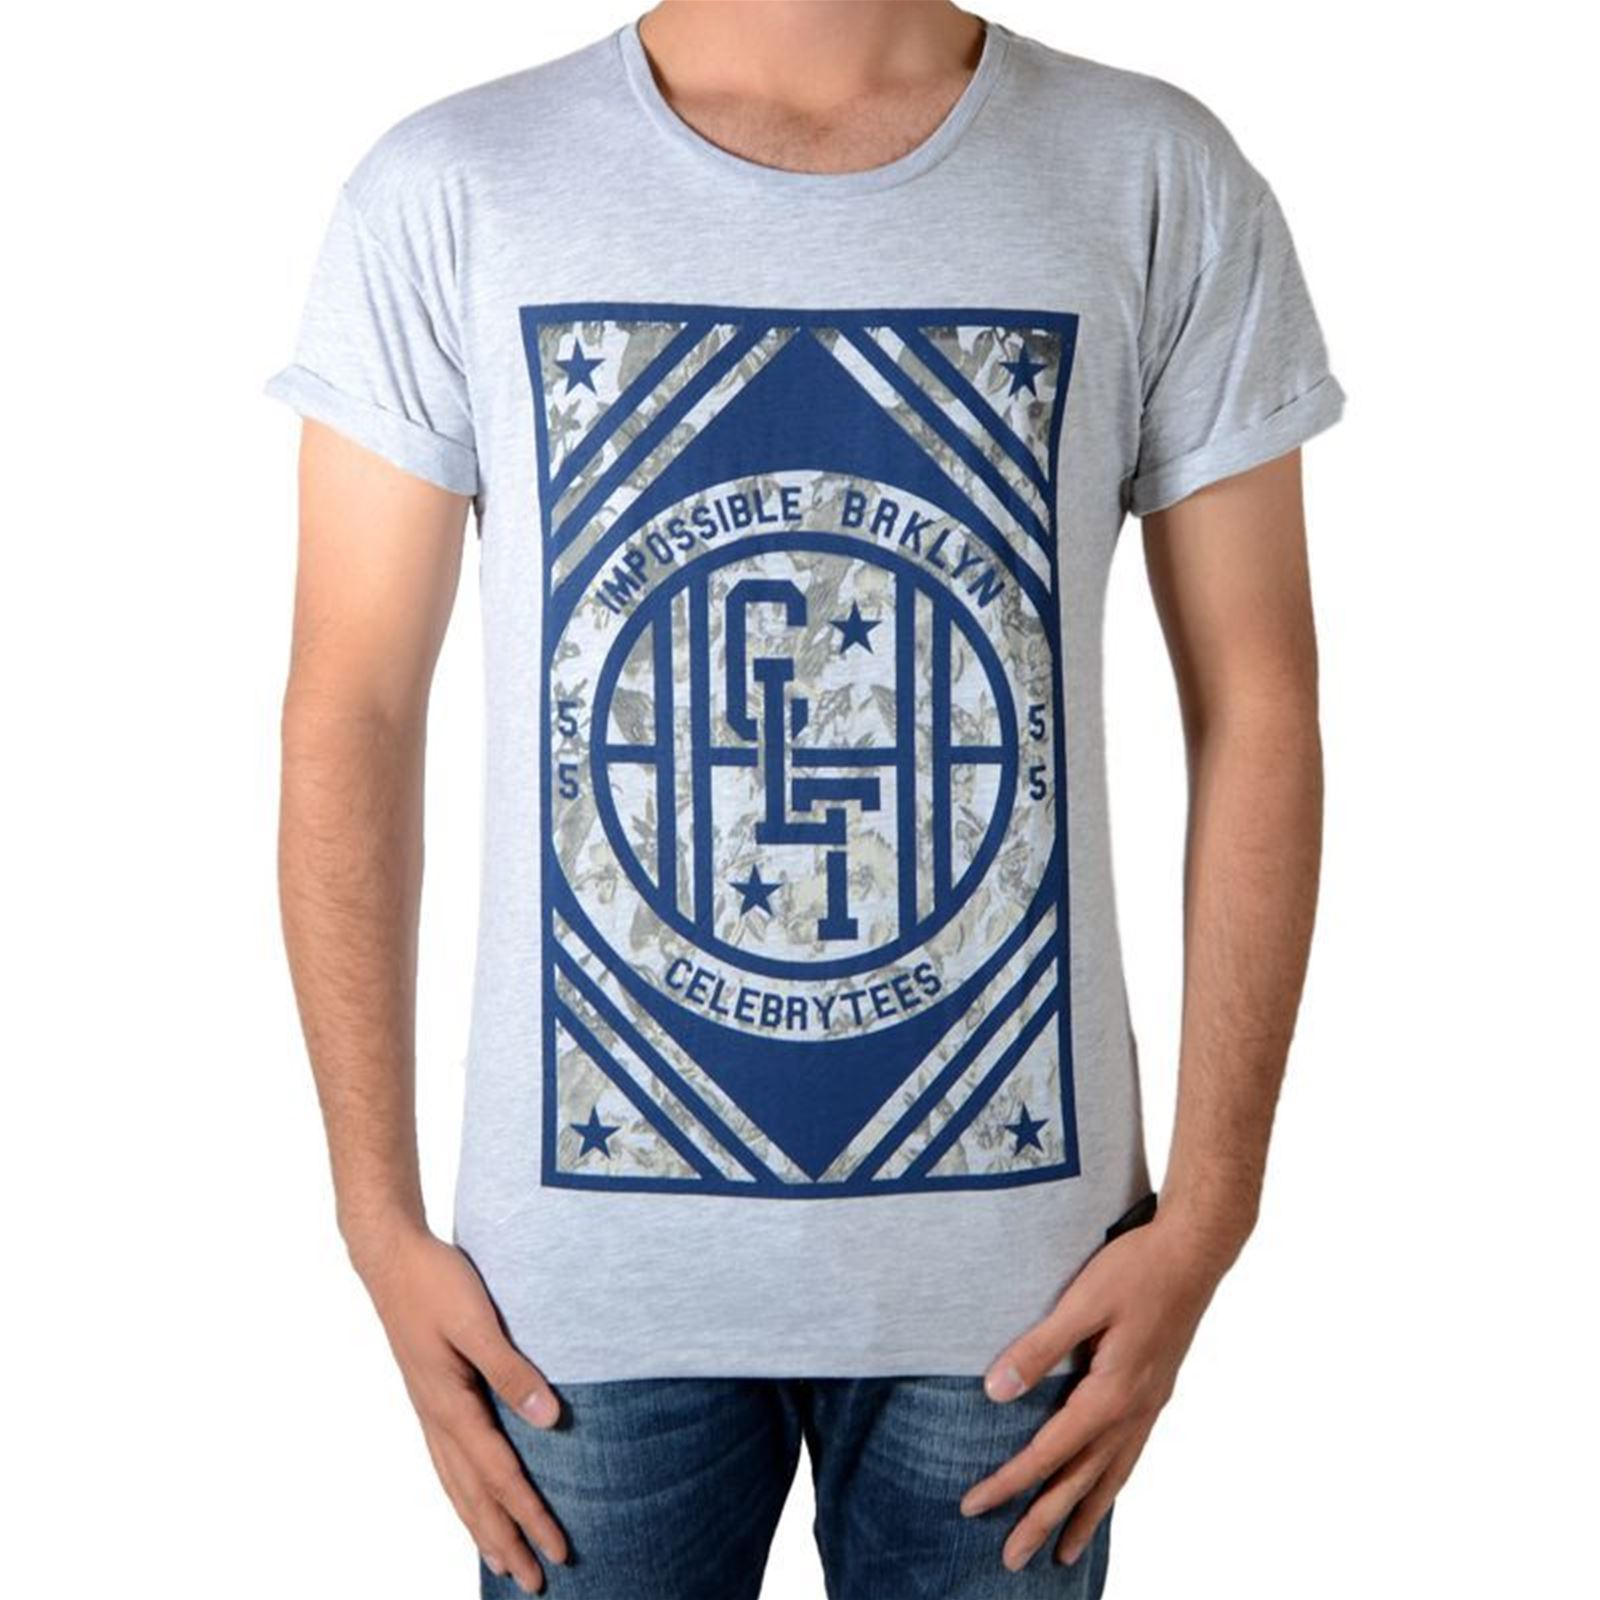 Manches Gris Celebry shirt Tees Courtes T qnHPnF